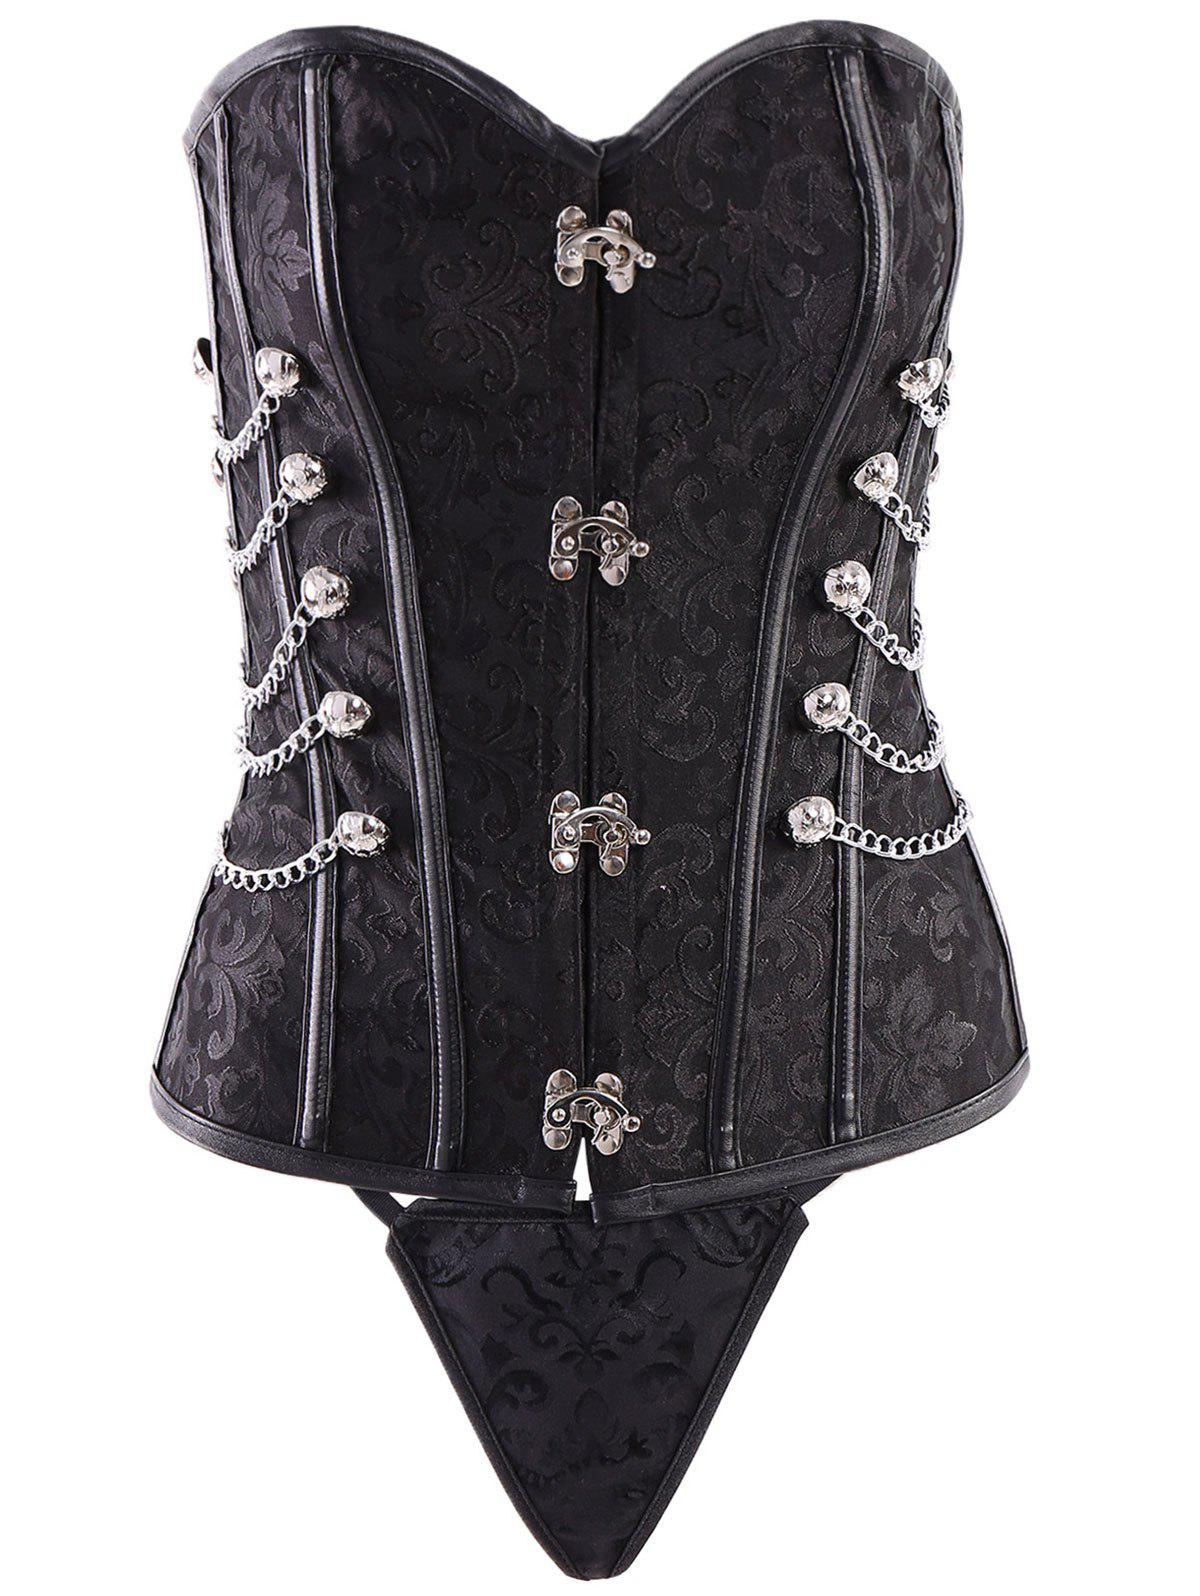 Vintage Steampunk Alloy Chain Lace-Up Corset For Women - BLACK S